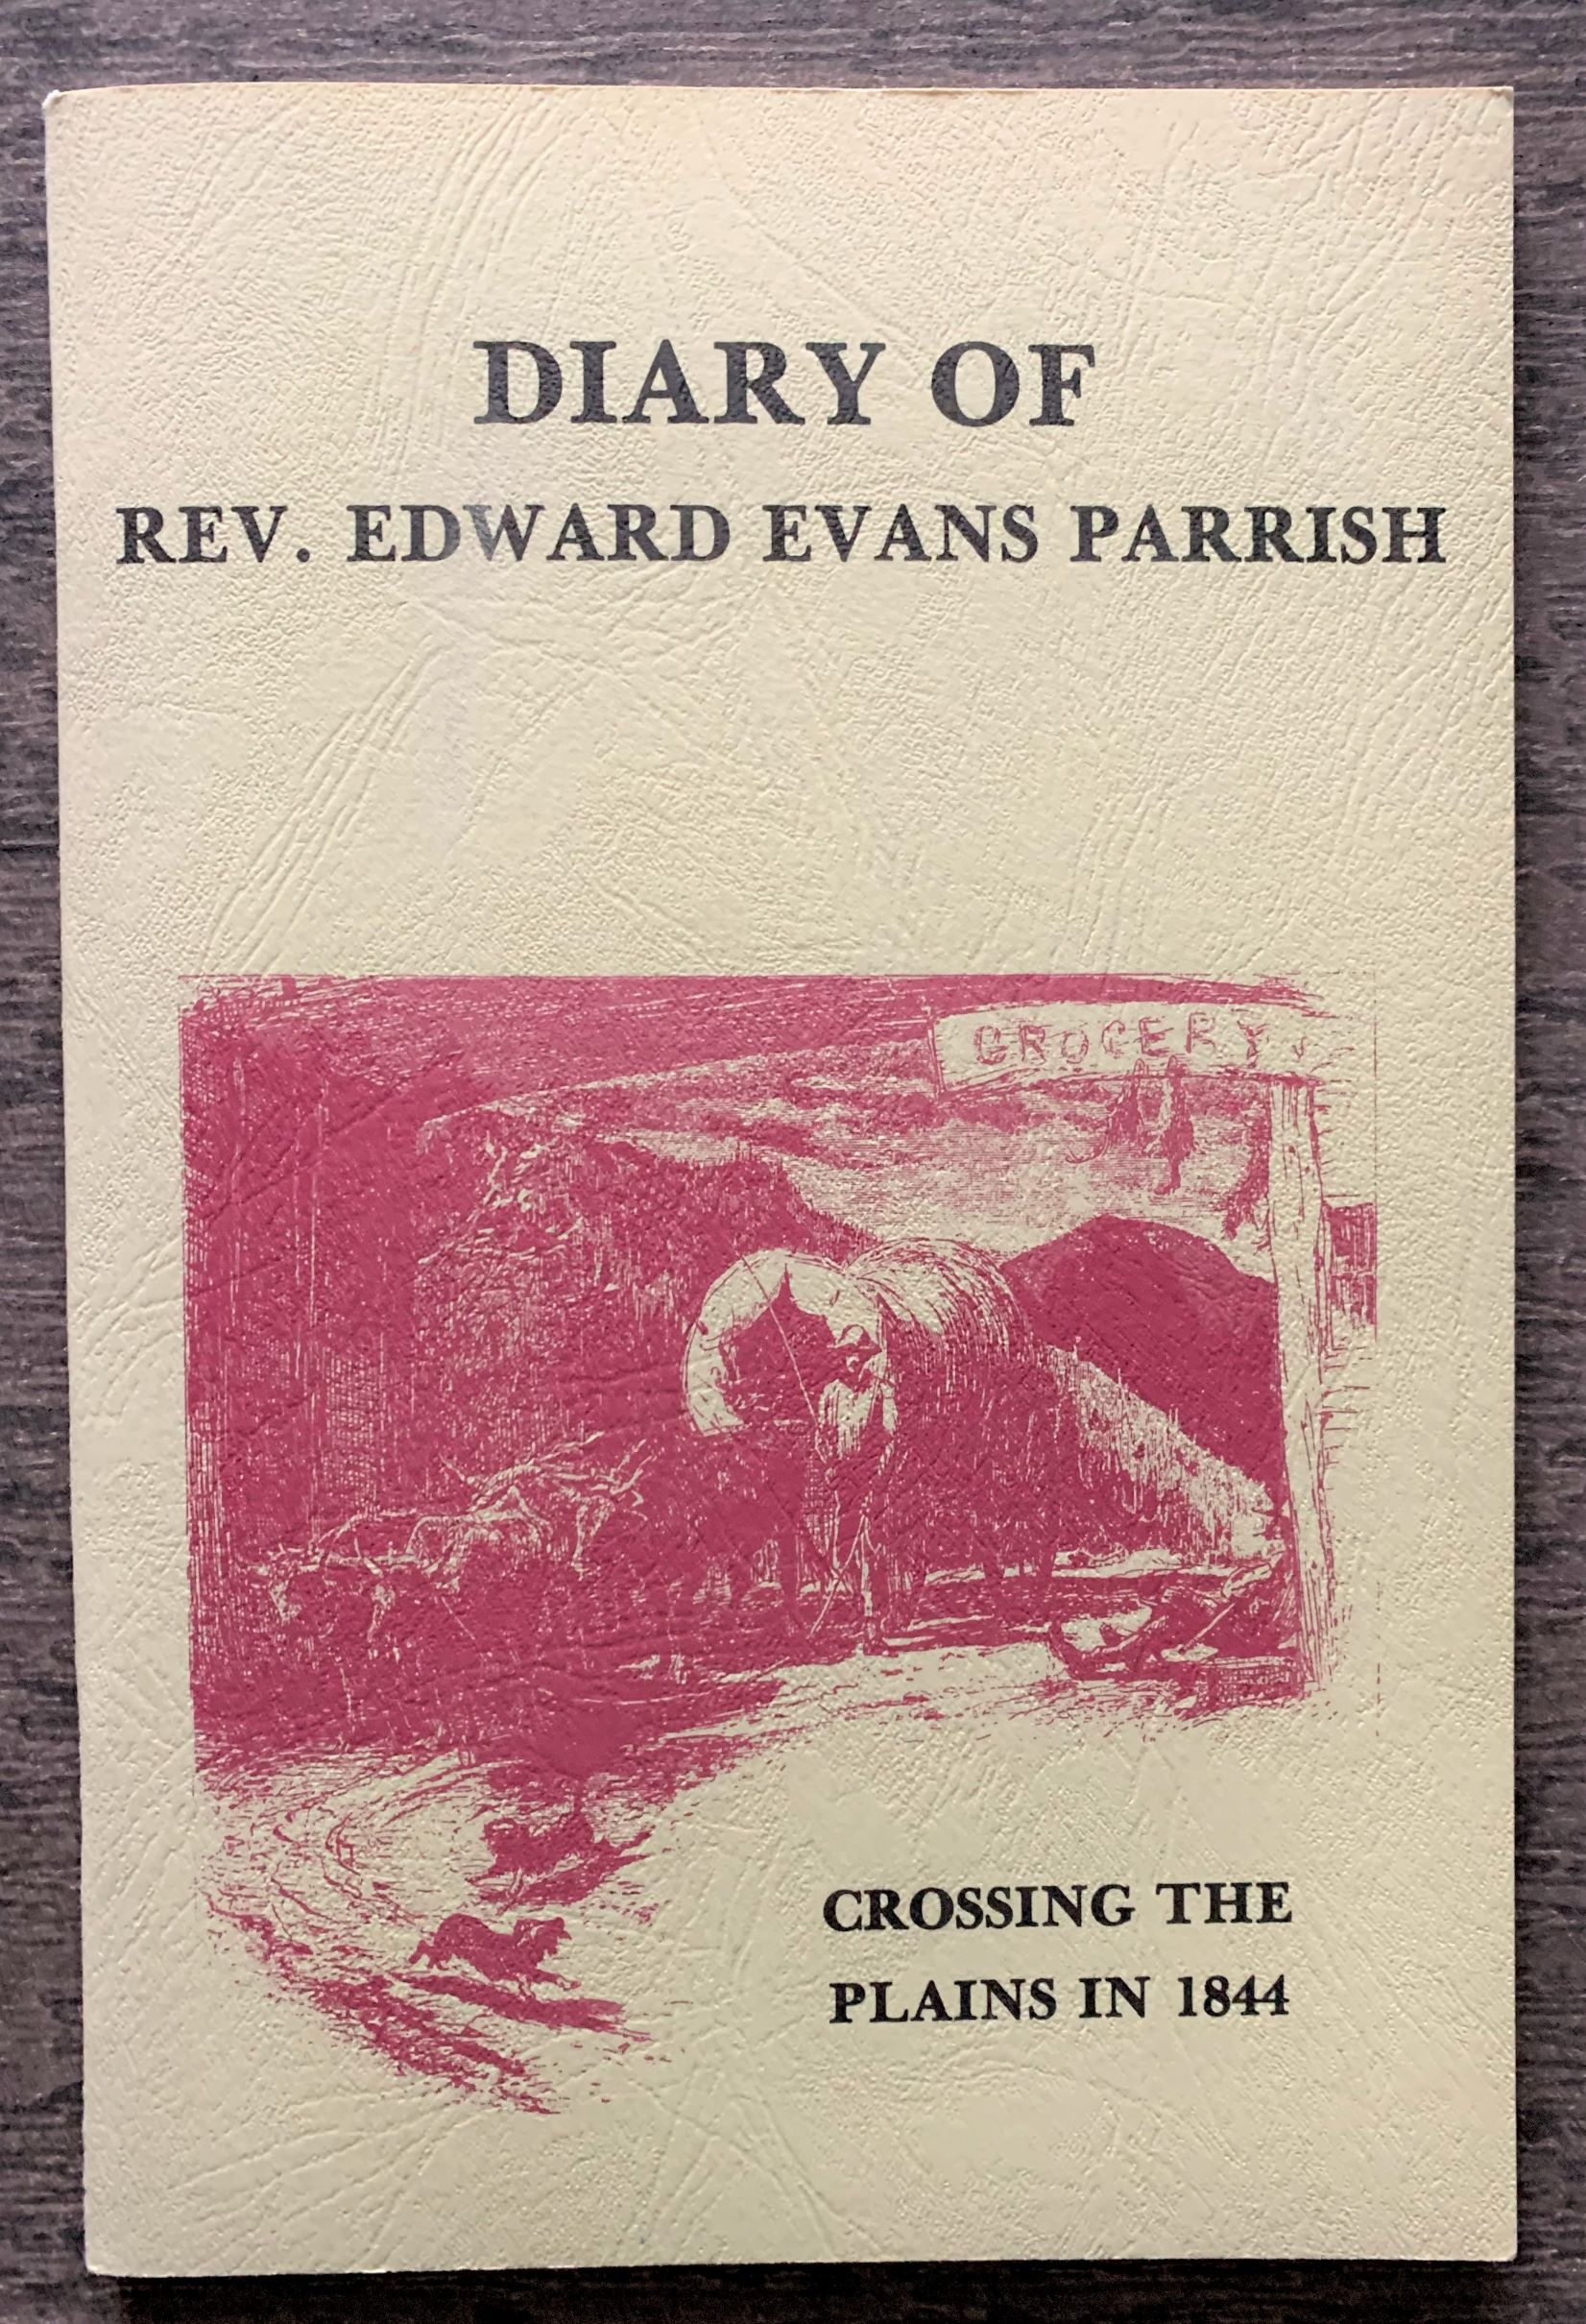 Image for Diary of Rev. Edward Evans Parrish, Crossing the Plains in 1844.